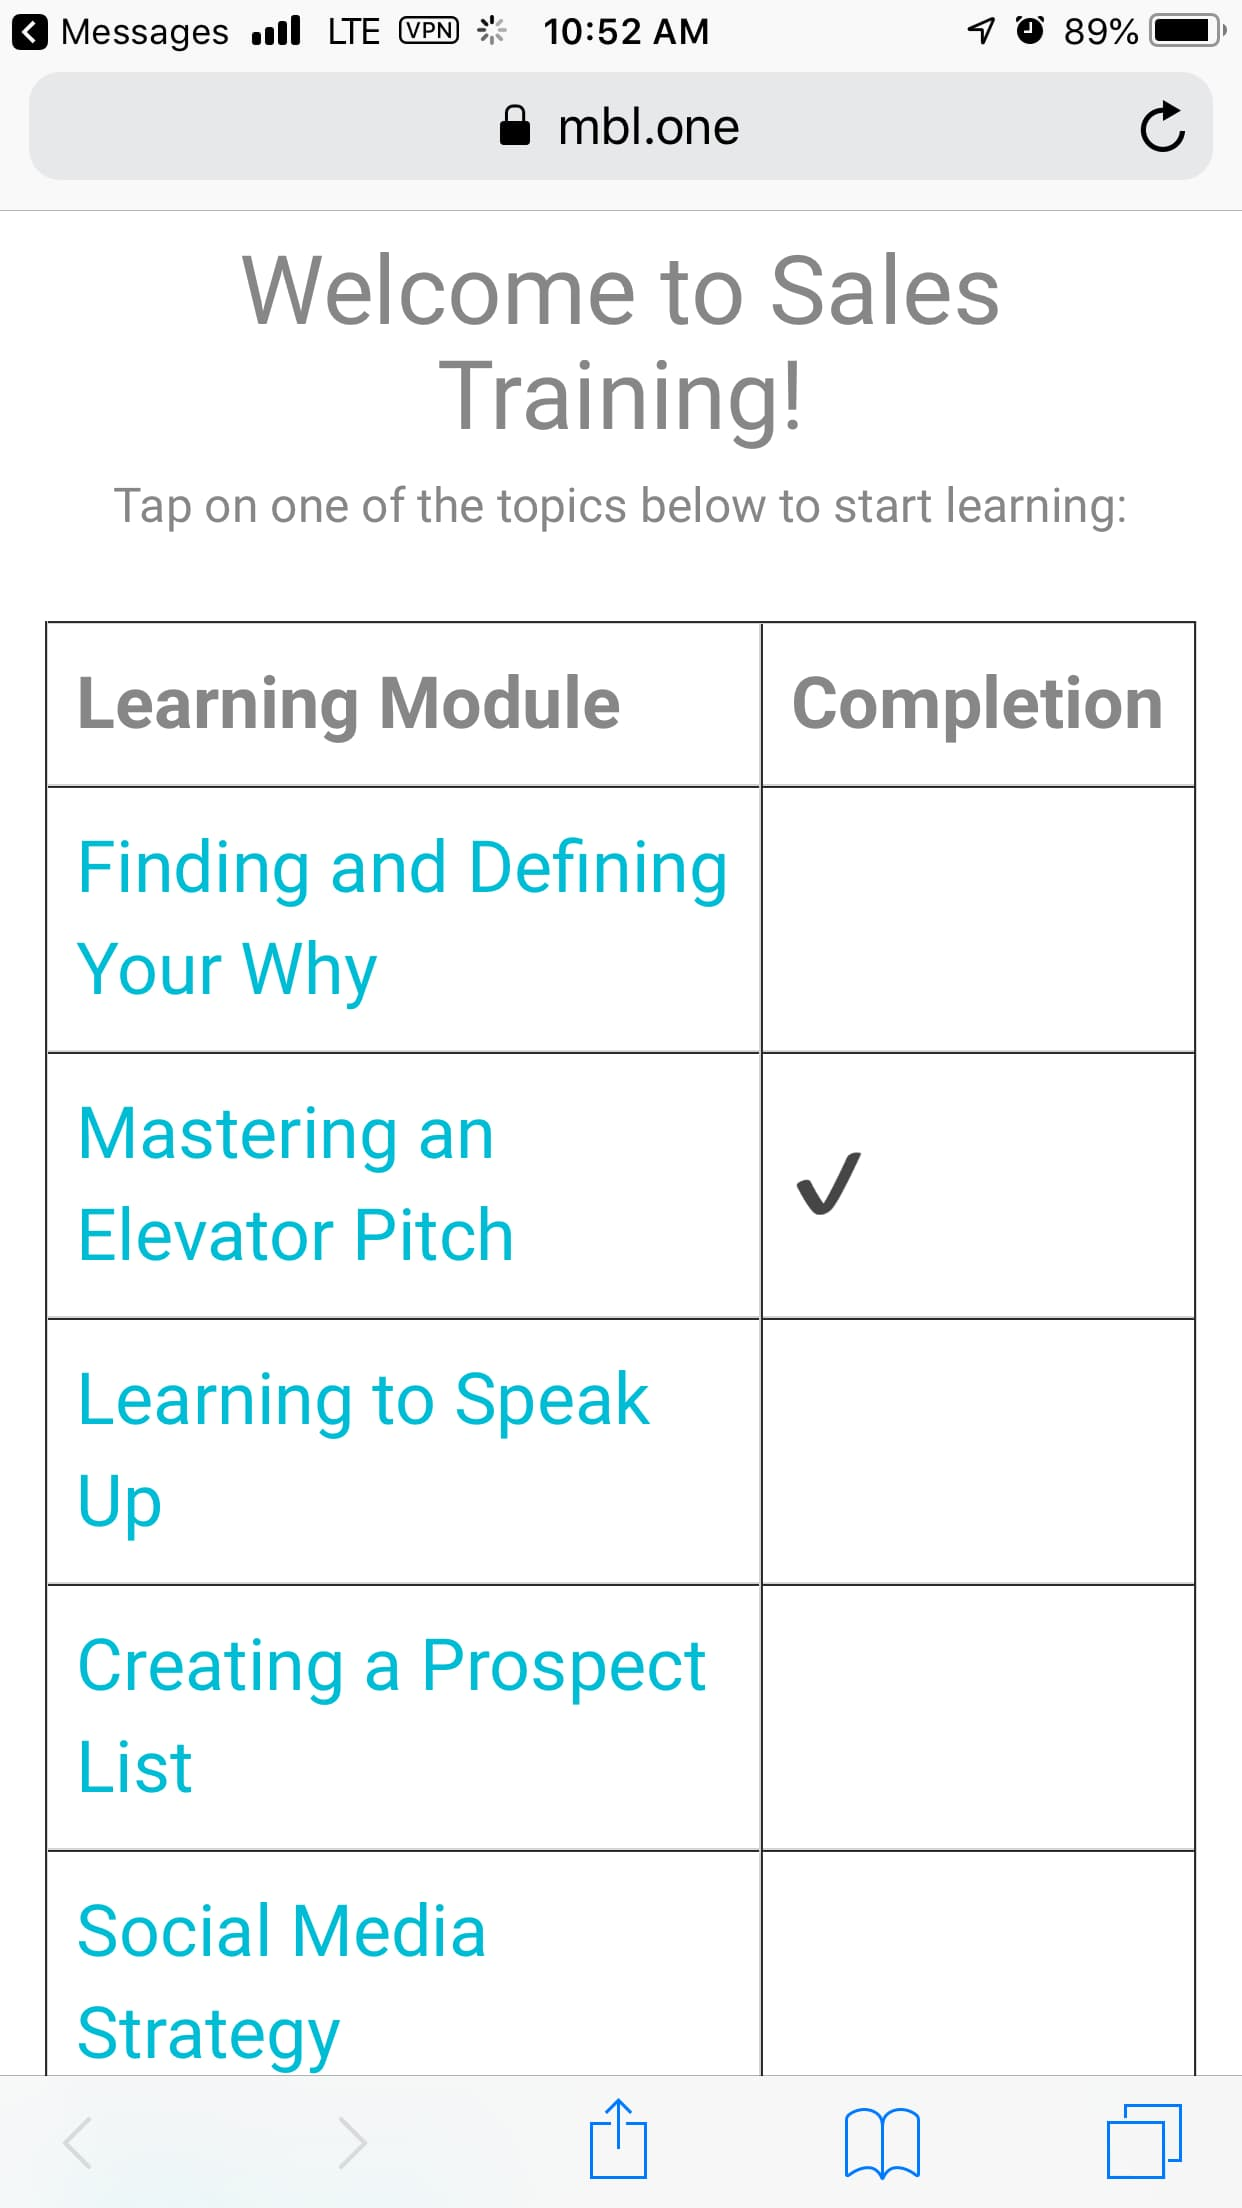 Mobile Coach Micro Learning Platform - Sales 101